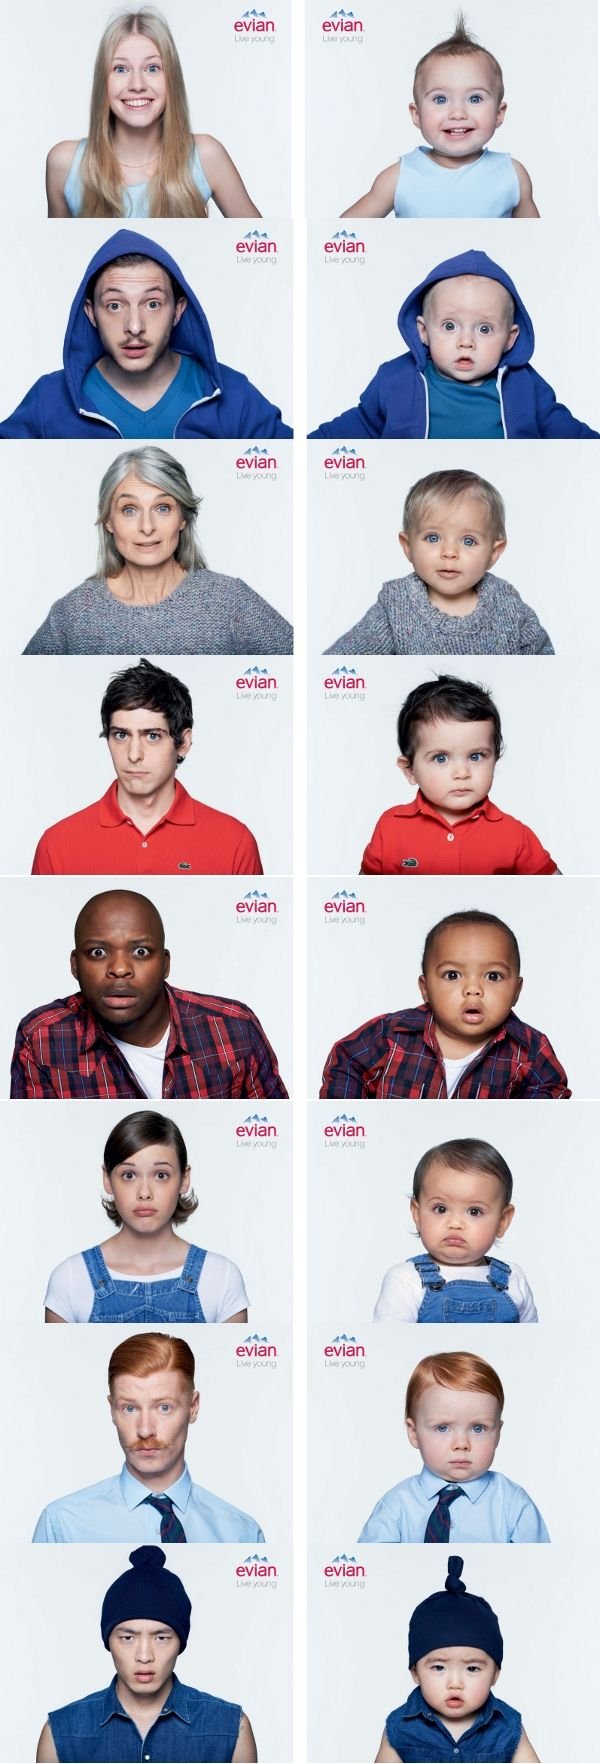 Campagne - Adulte - Enfant - Evian - Live young Love this it is done so well!